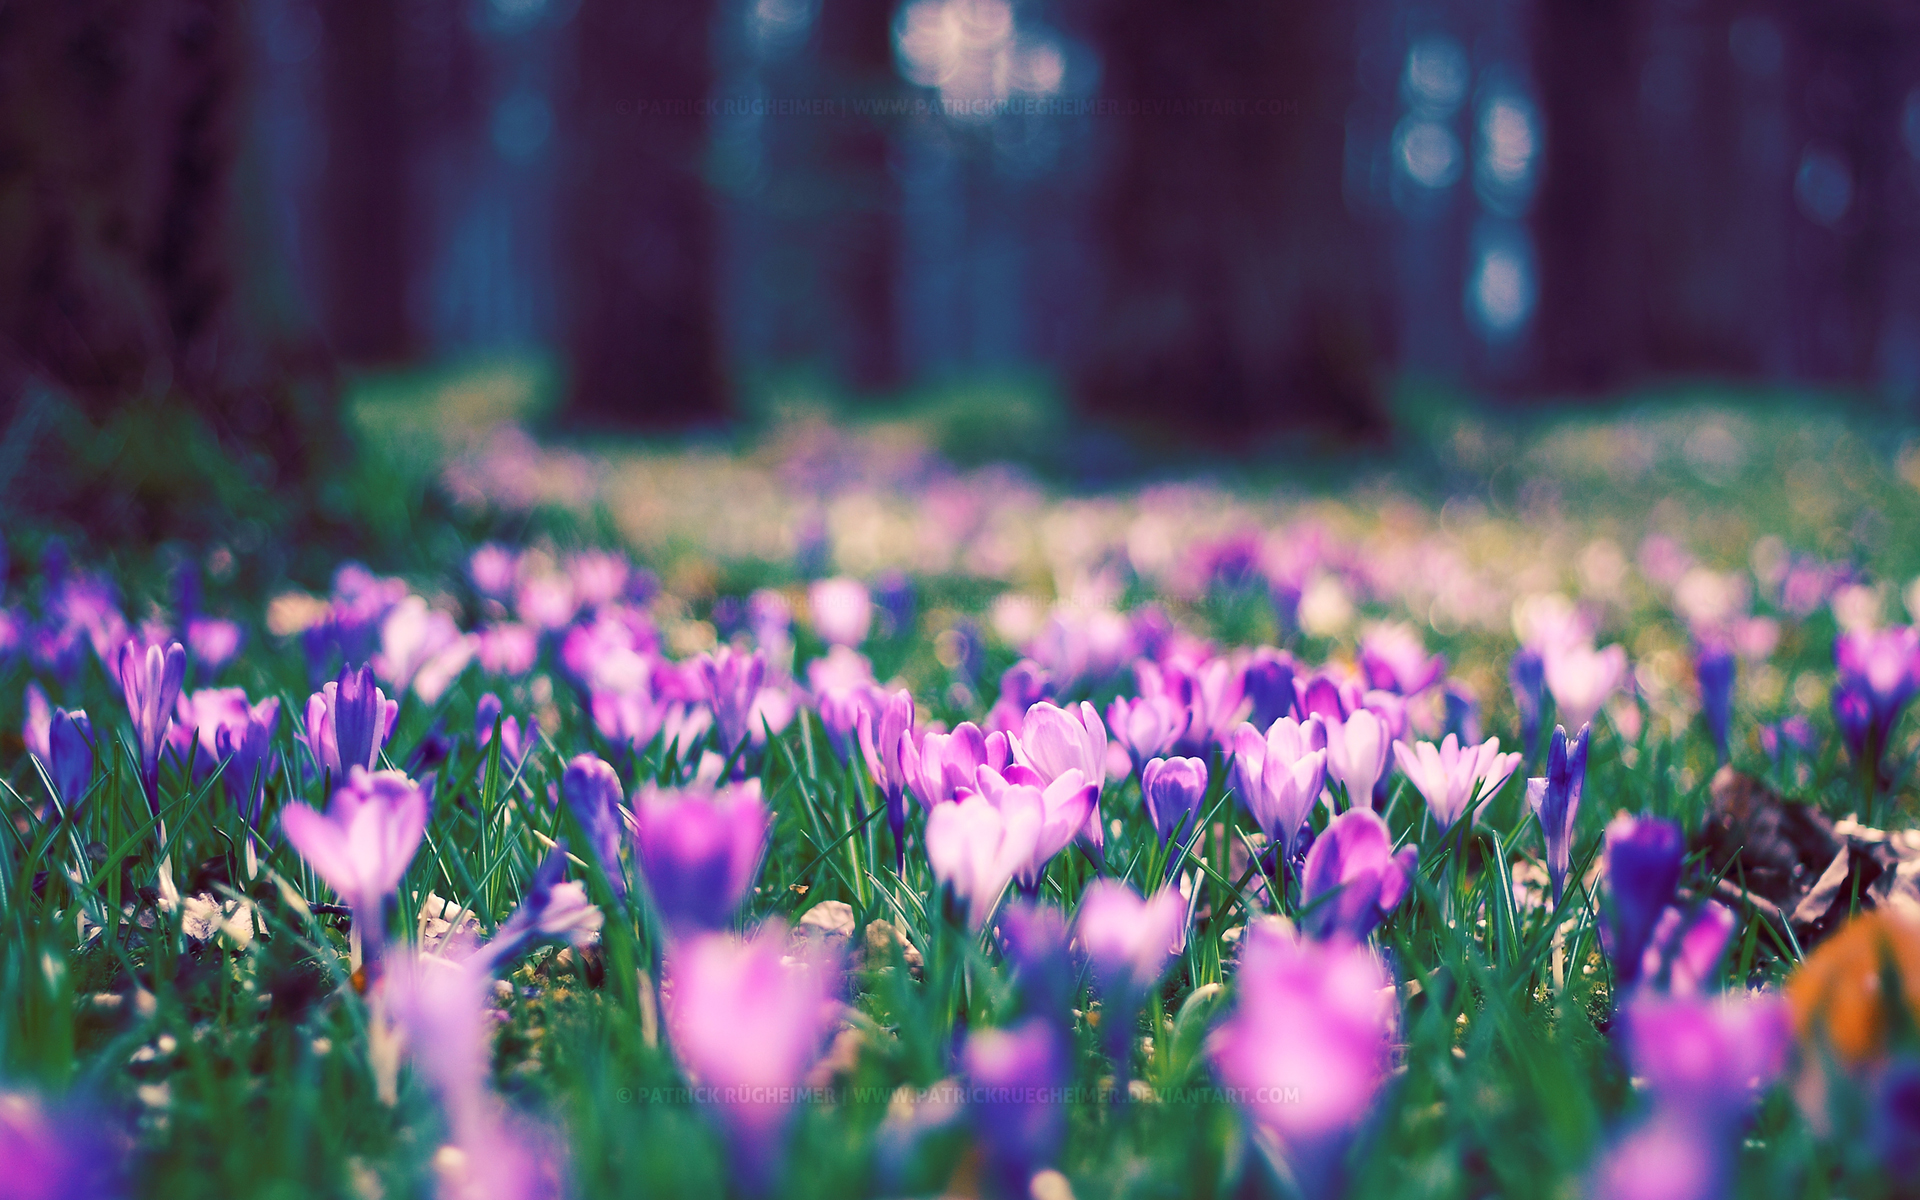 Spring Flowers Wallpapers image gallery 1920x1200